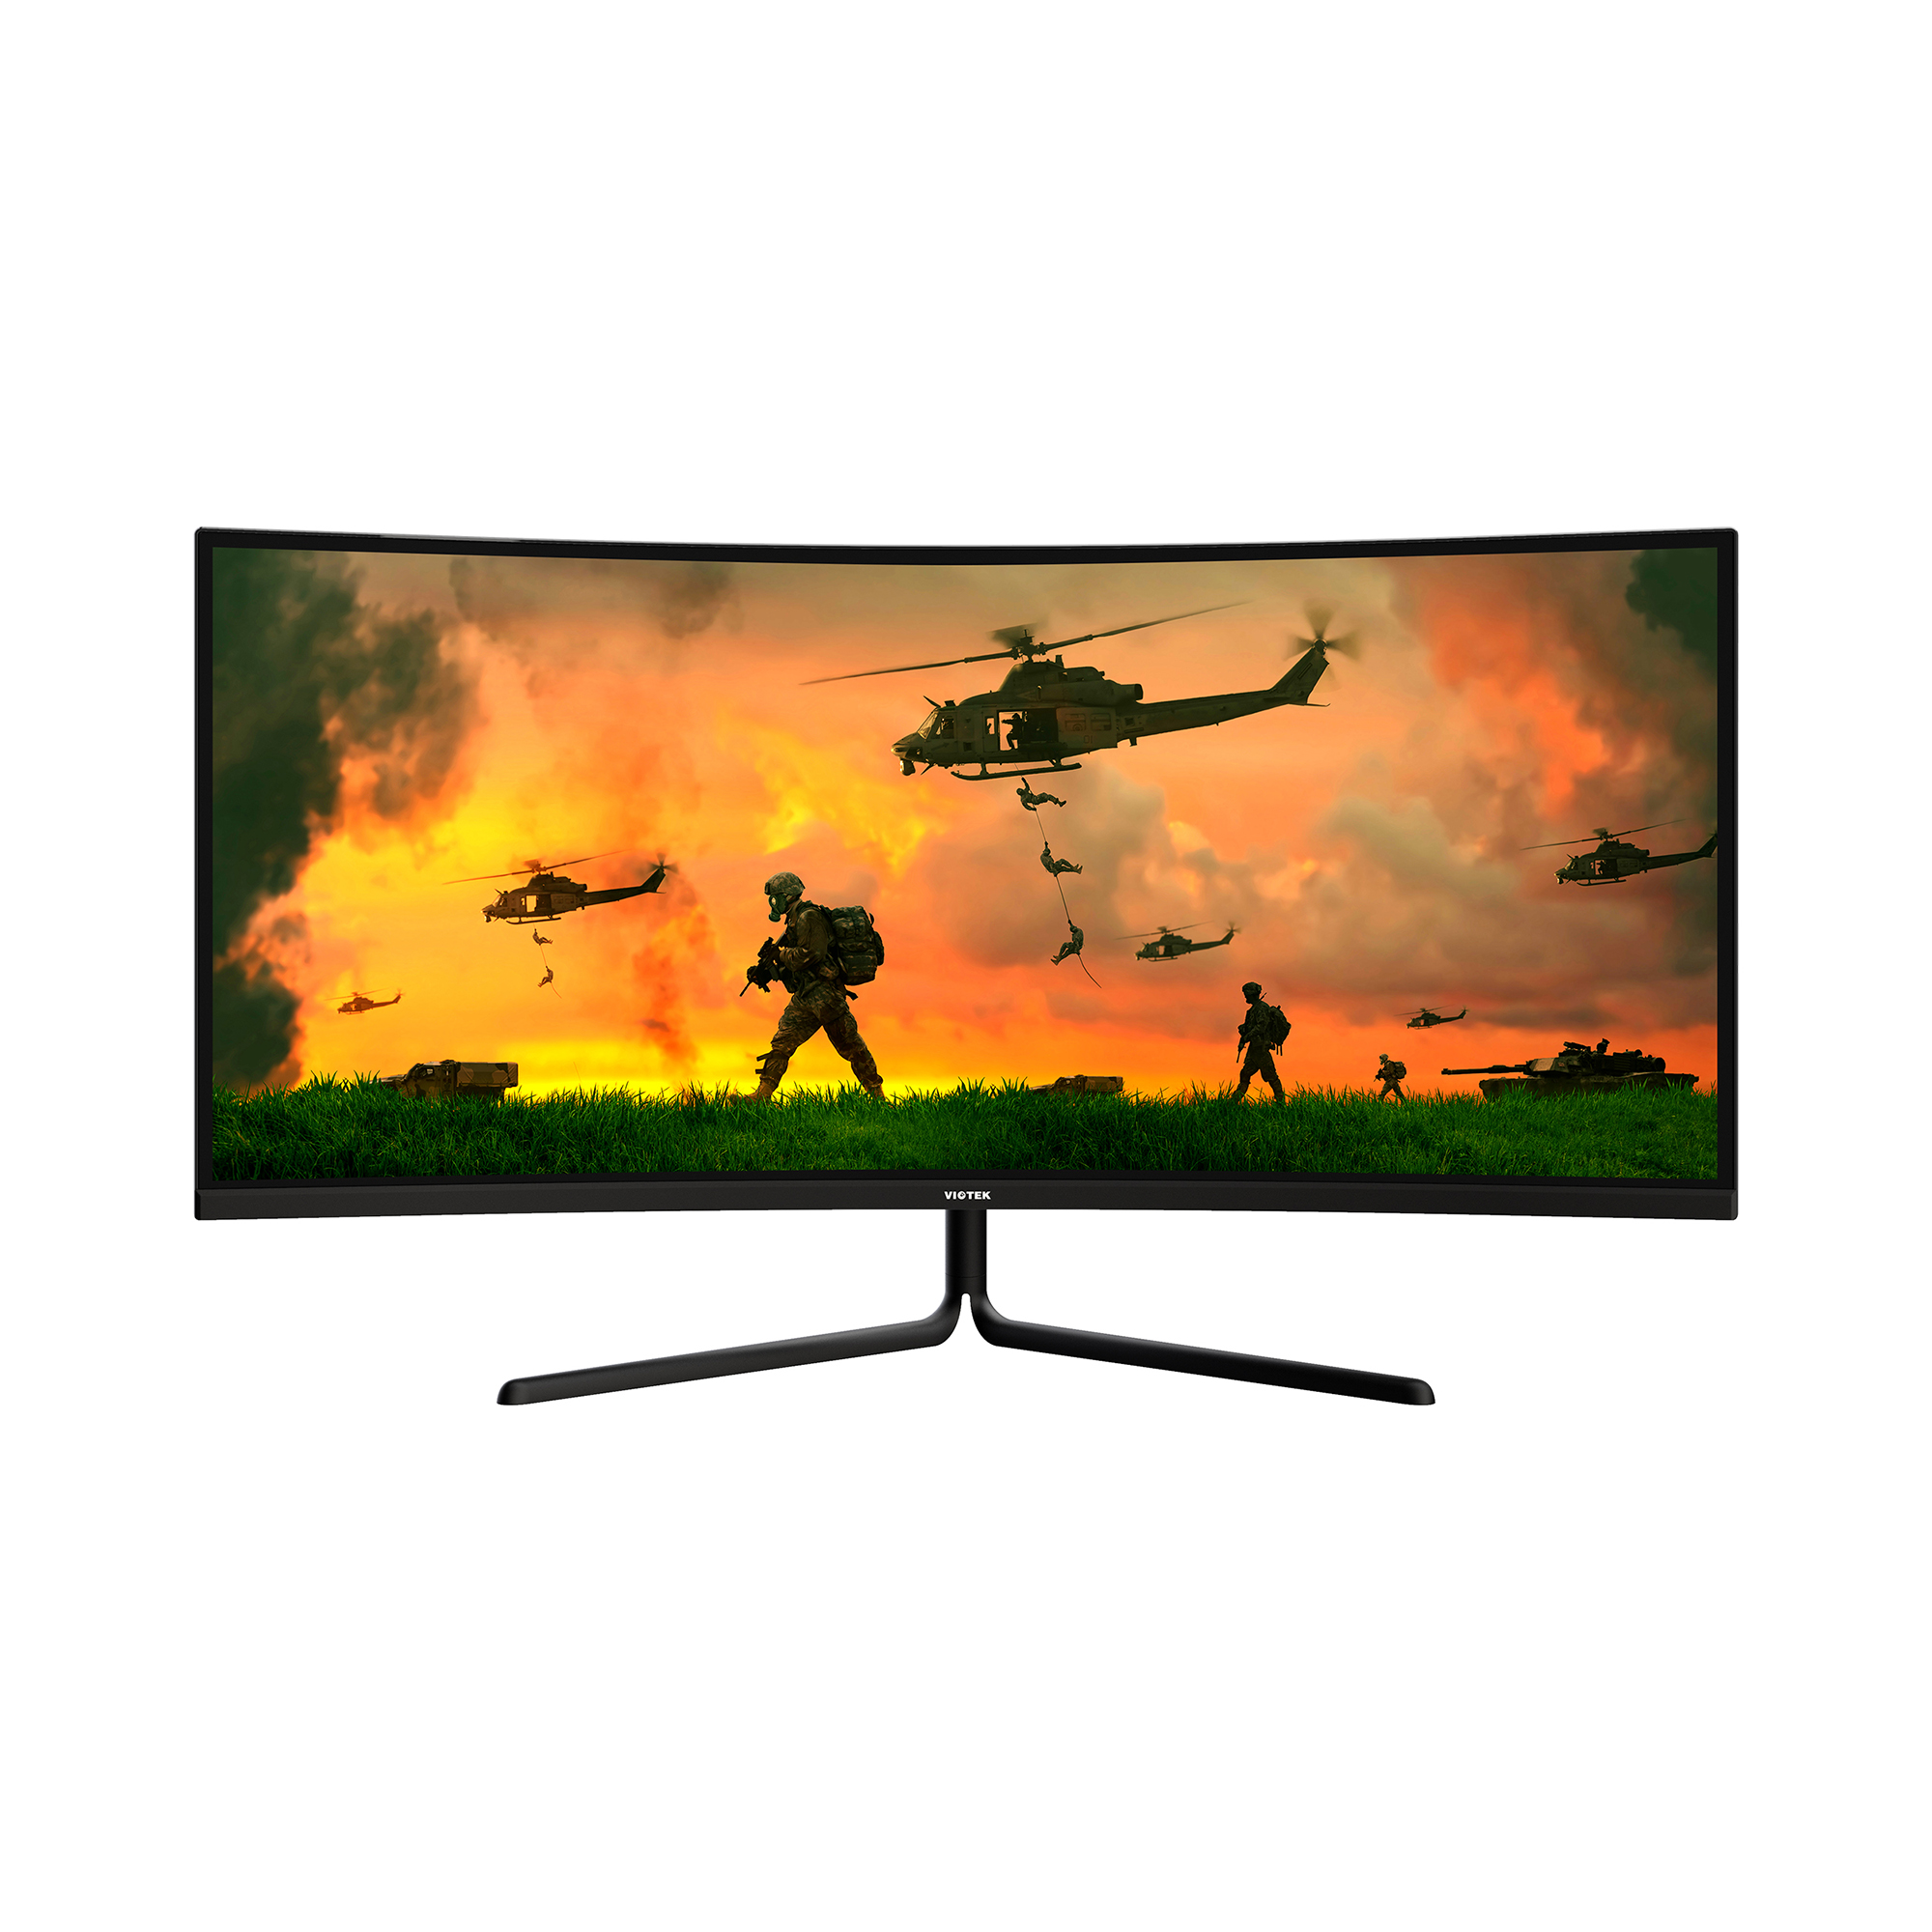 "GNV34DB 34"" Ultrawide QHD Curved Gaming Monitor"